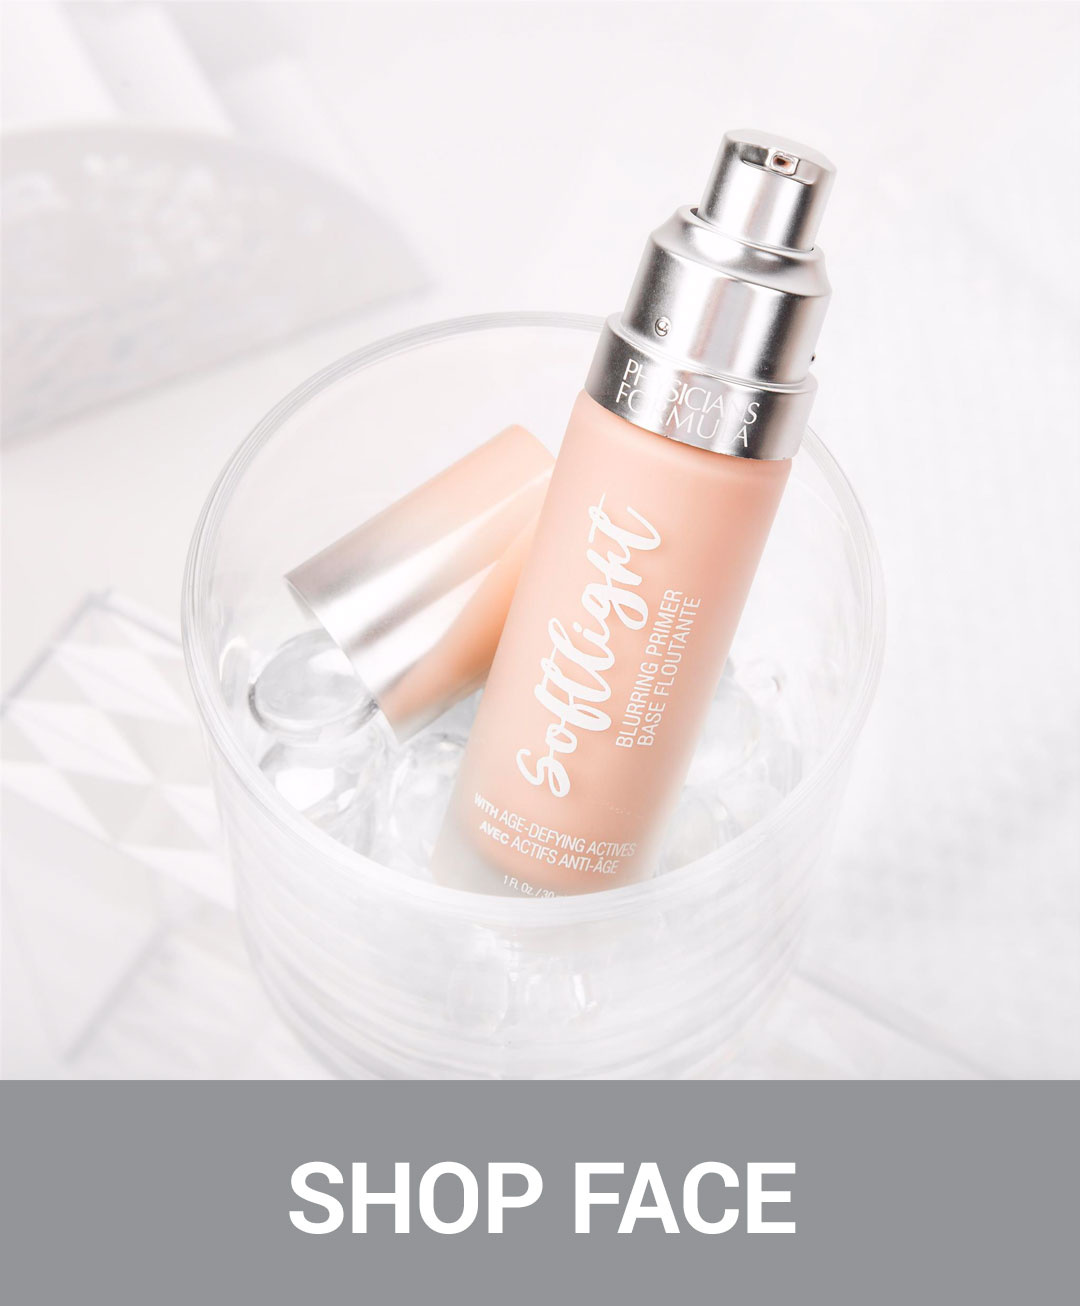 Physicians Formula | Shop Face - product in a cup with cap off